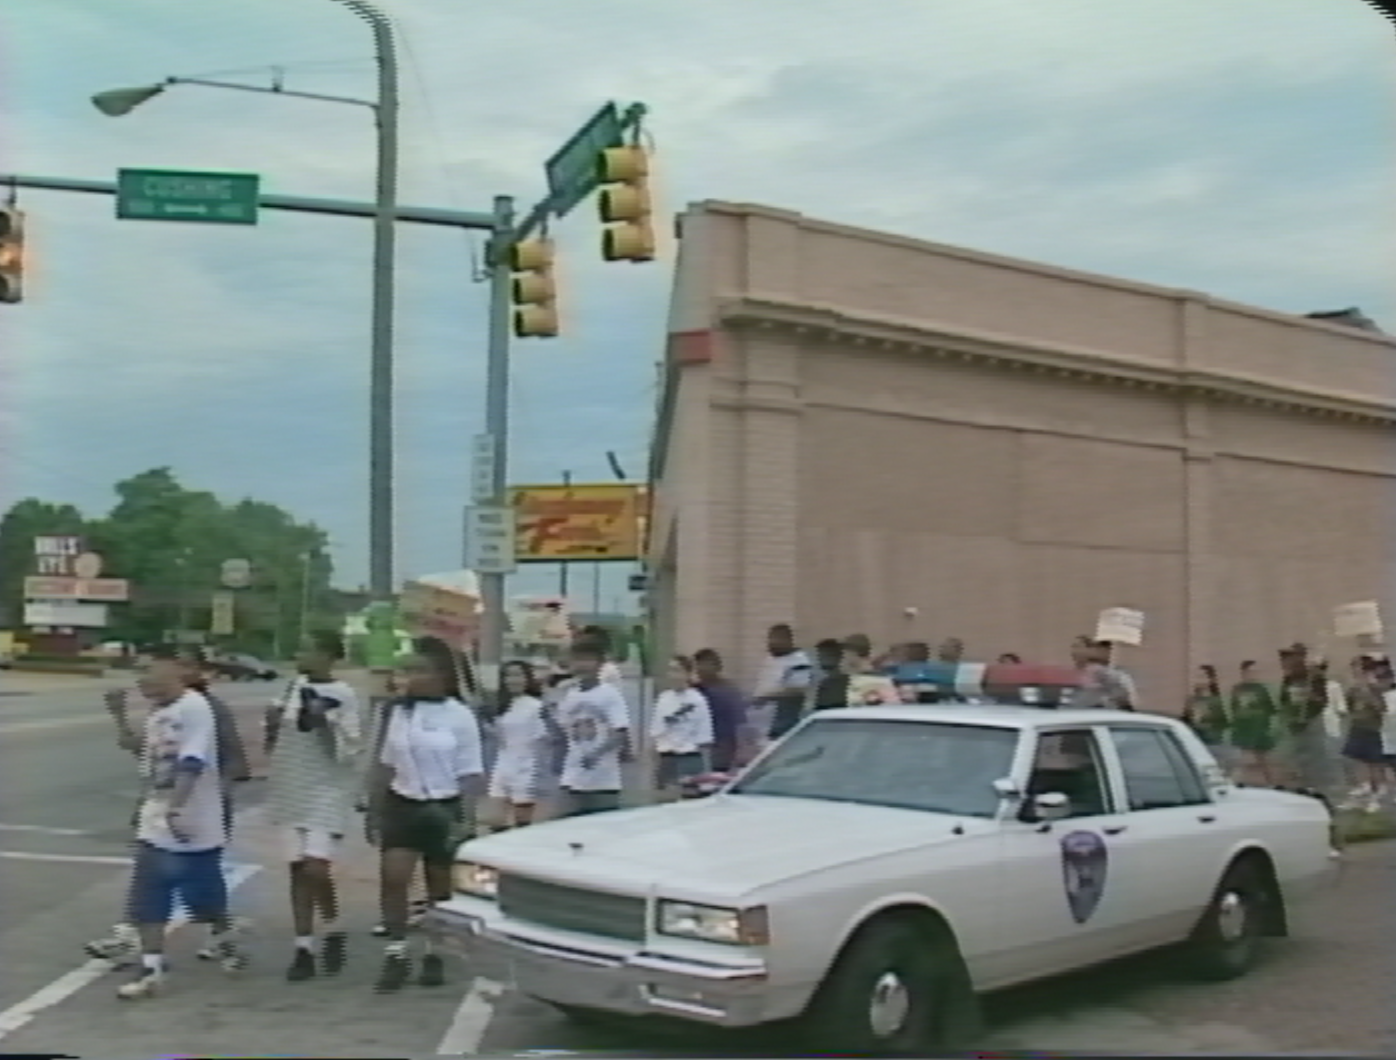 A screen grab of a WSJV segment on student demonstrations in South Bend, Indiana. July 26, 1995.